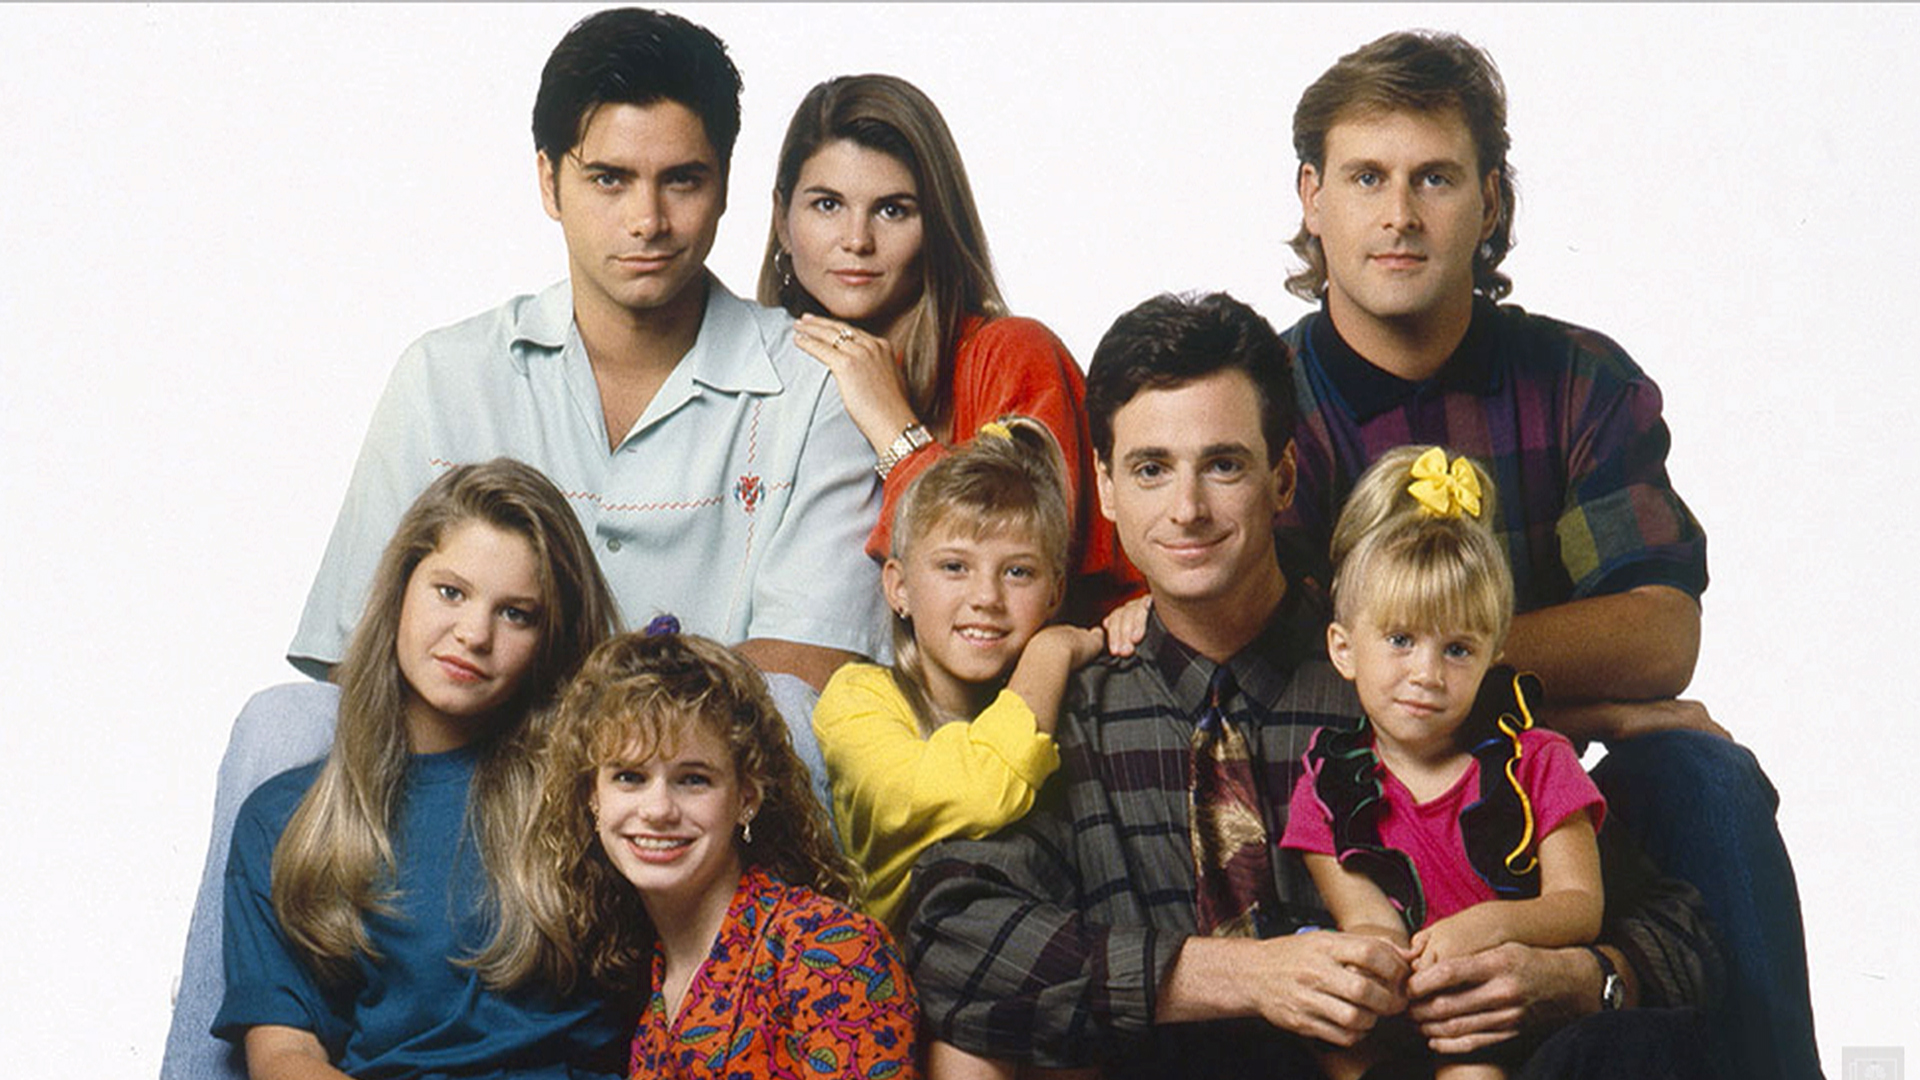 John stamos confirms 39 full house 39 to get 39 fuller 39 spinoff - House of tv show ...